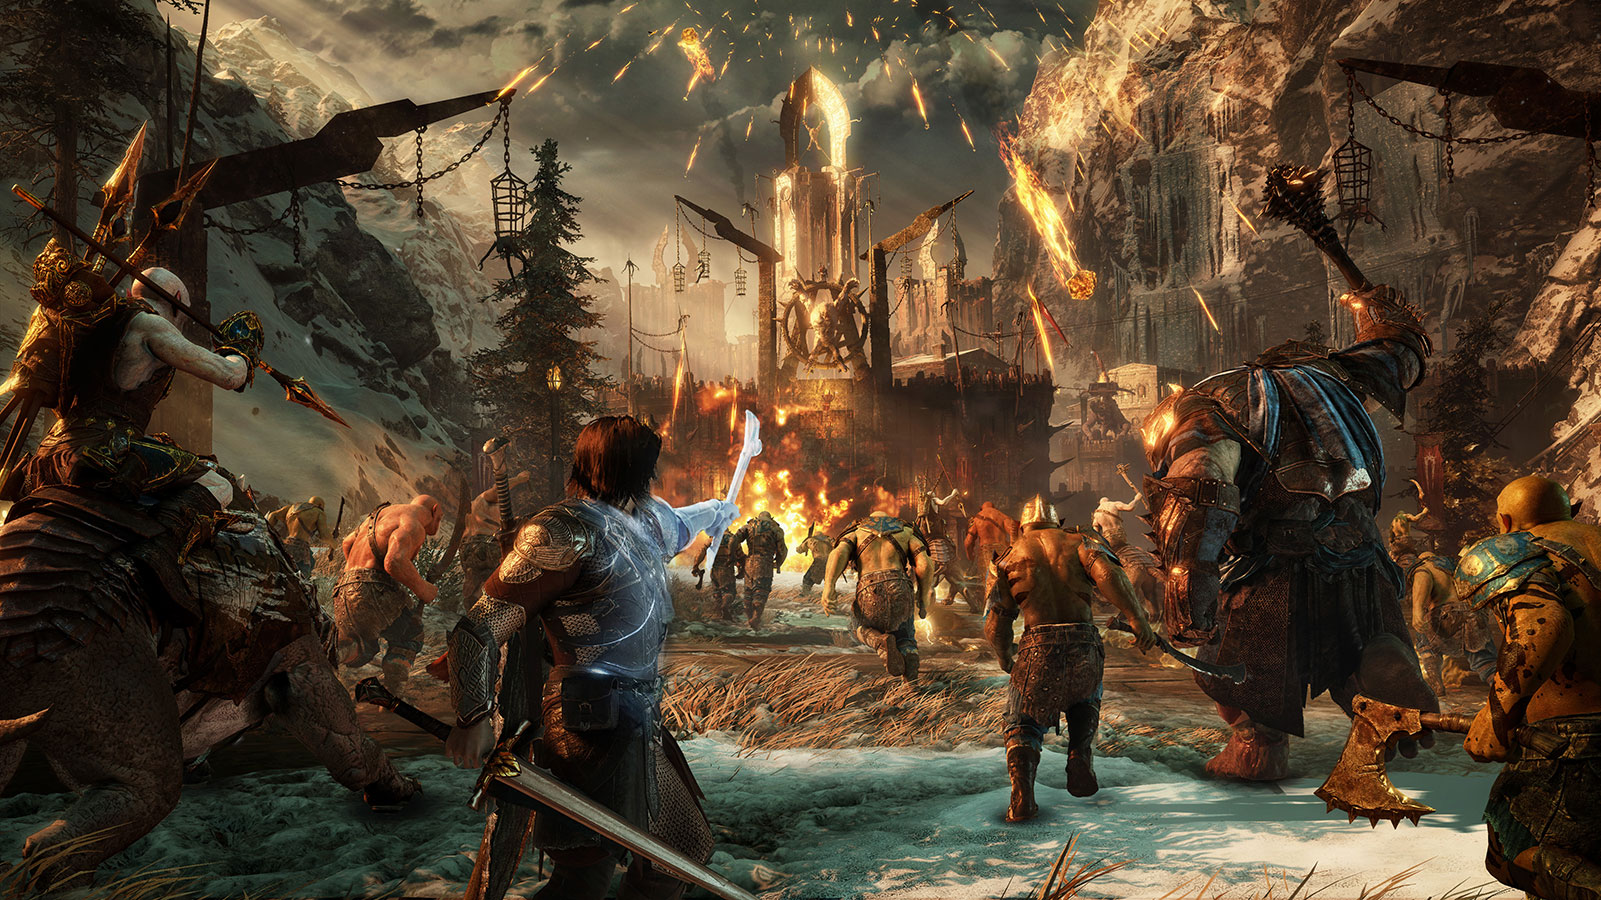 Middle-earth: Shadow of War microtransactions